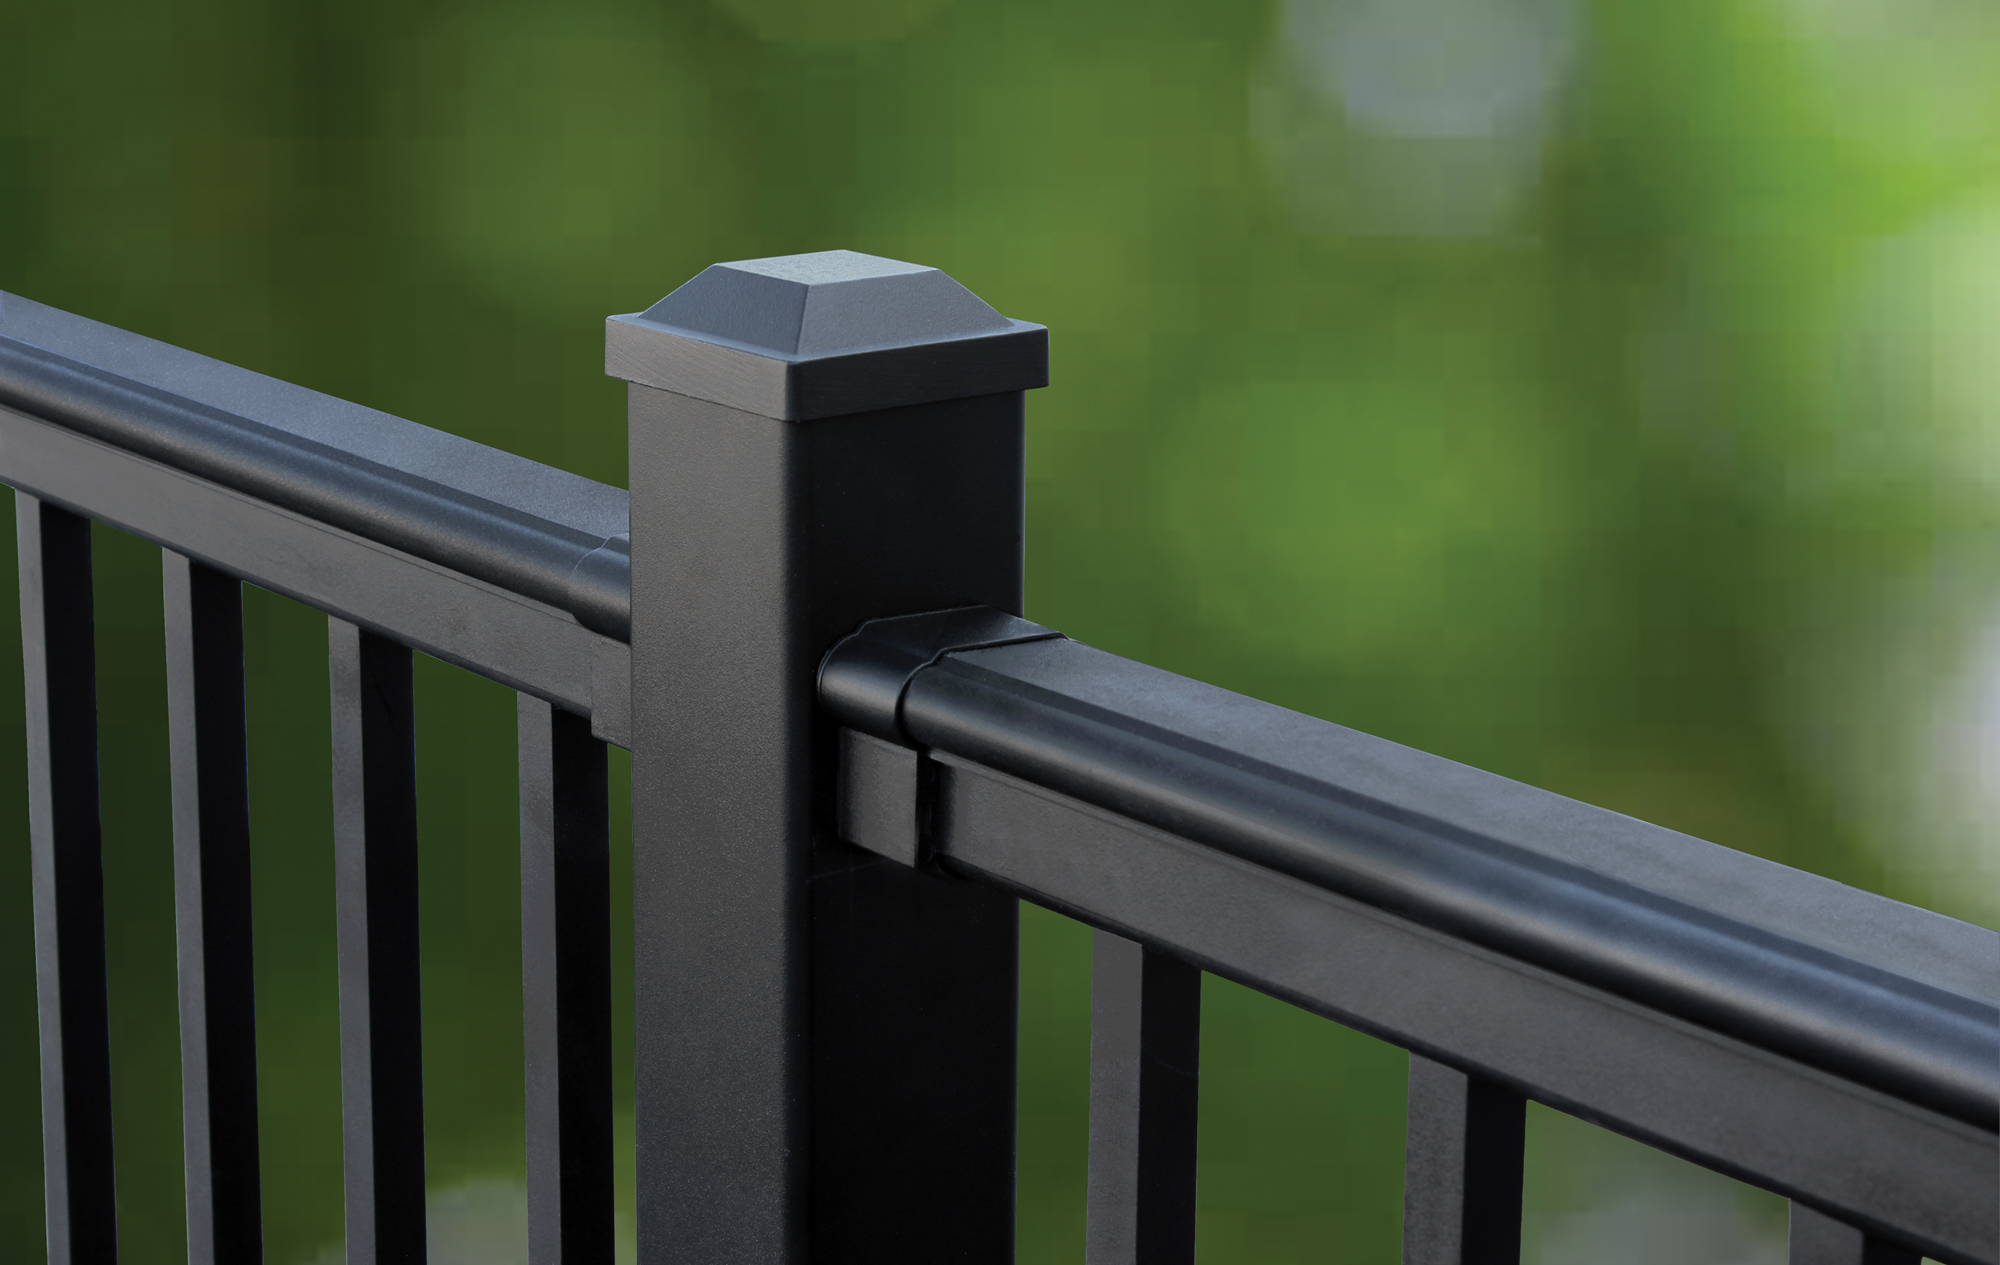 Easy Installation With Fairway S Slimline Railing Jlc Online